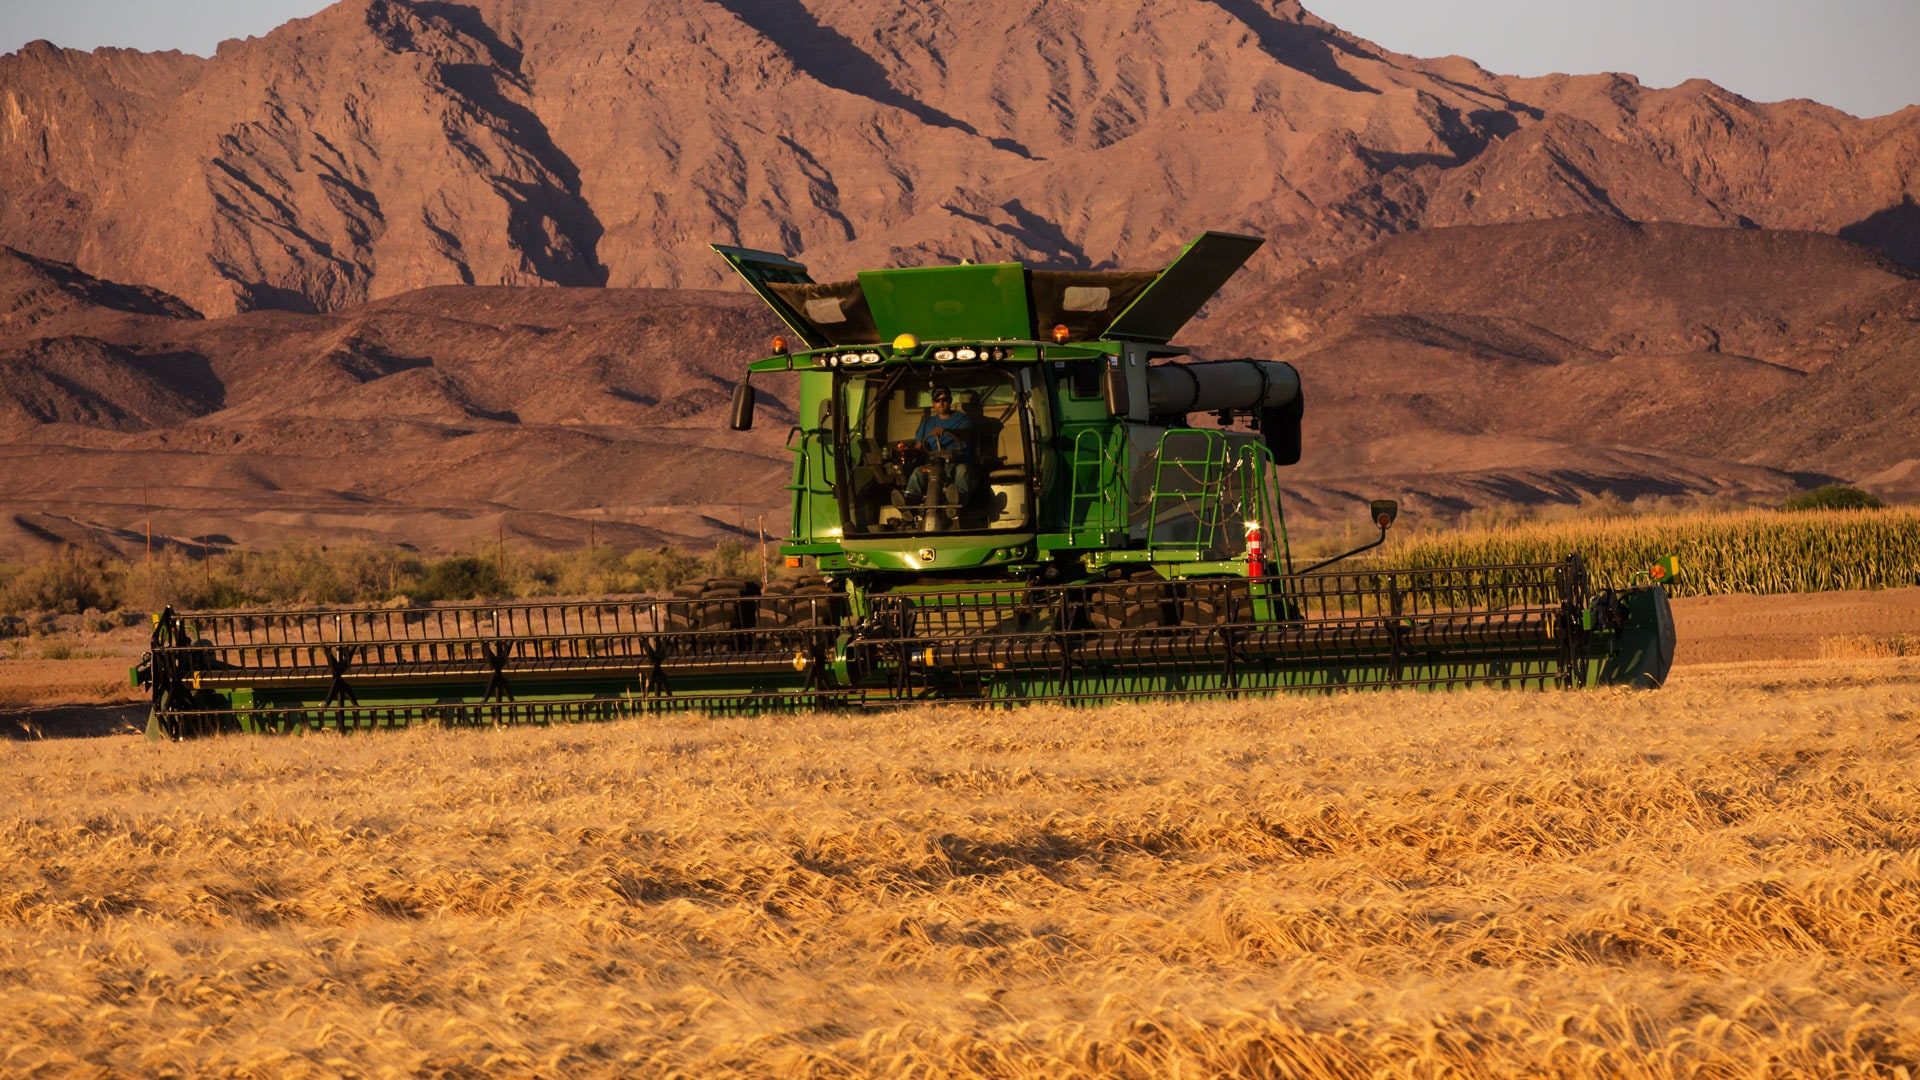 draper platform image of machine moving through field with mountains in background